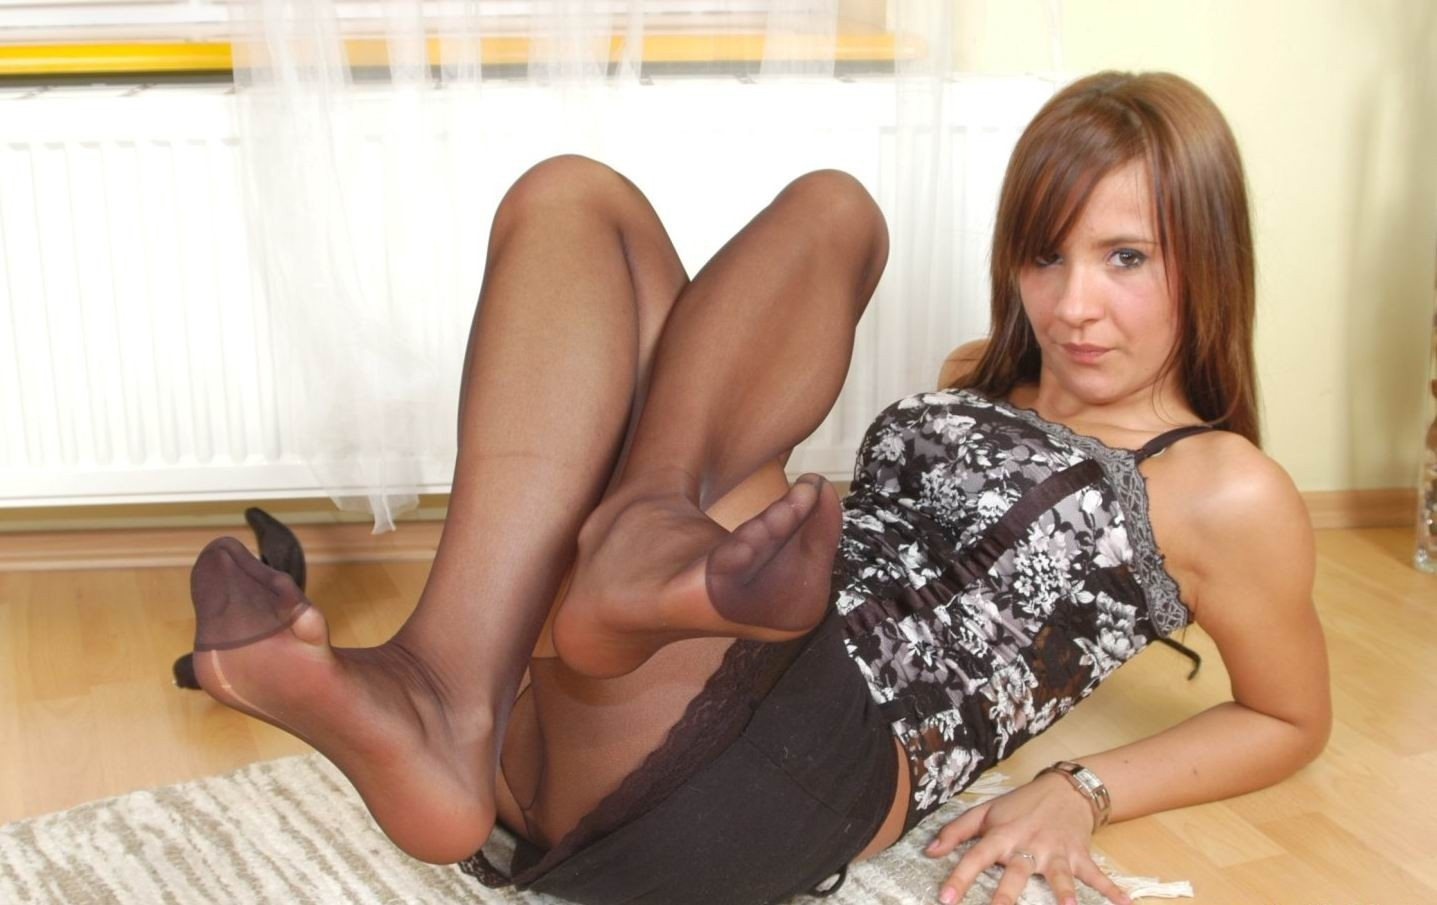 Rht pantyhose foot jobs She perfect!